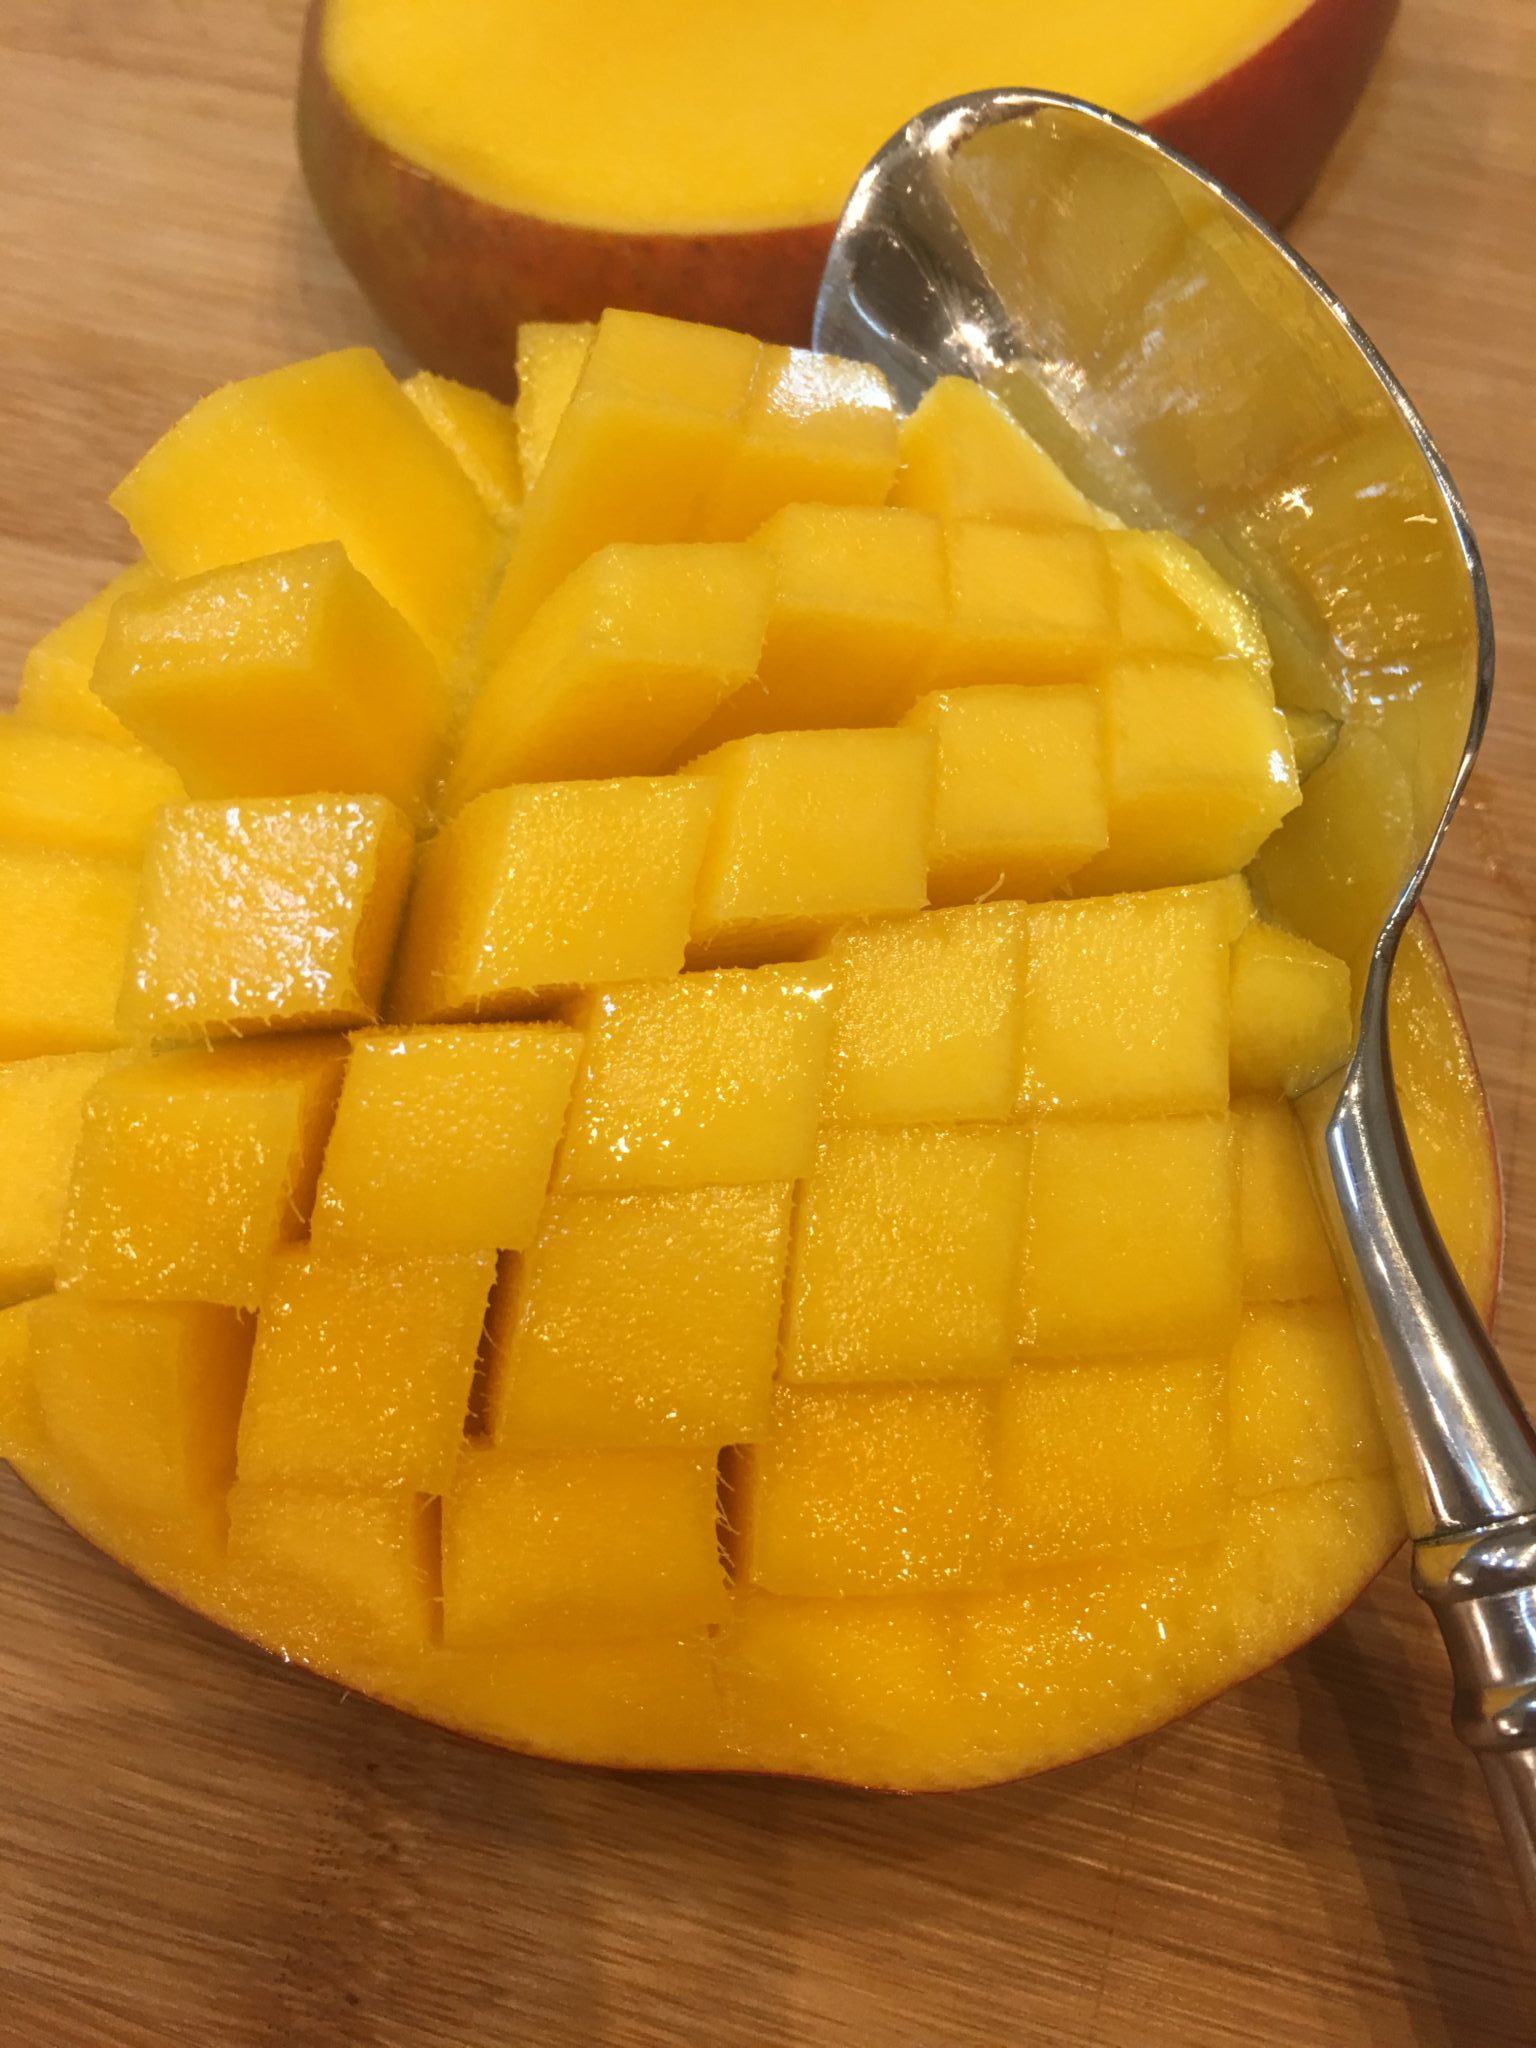 Use a spoon to get the meat from a mango